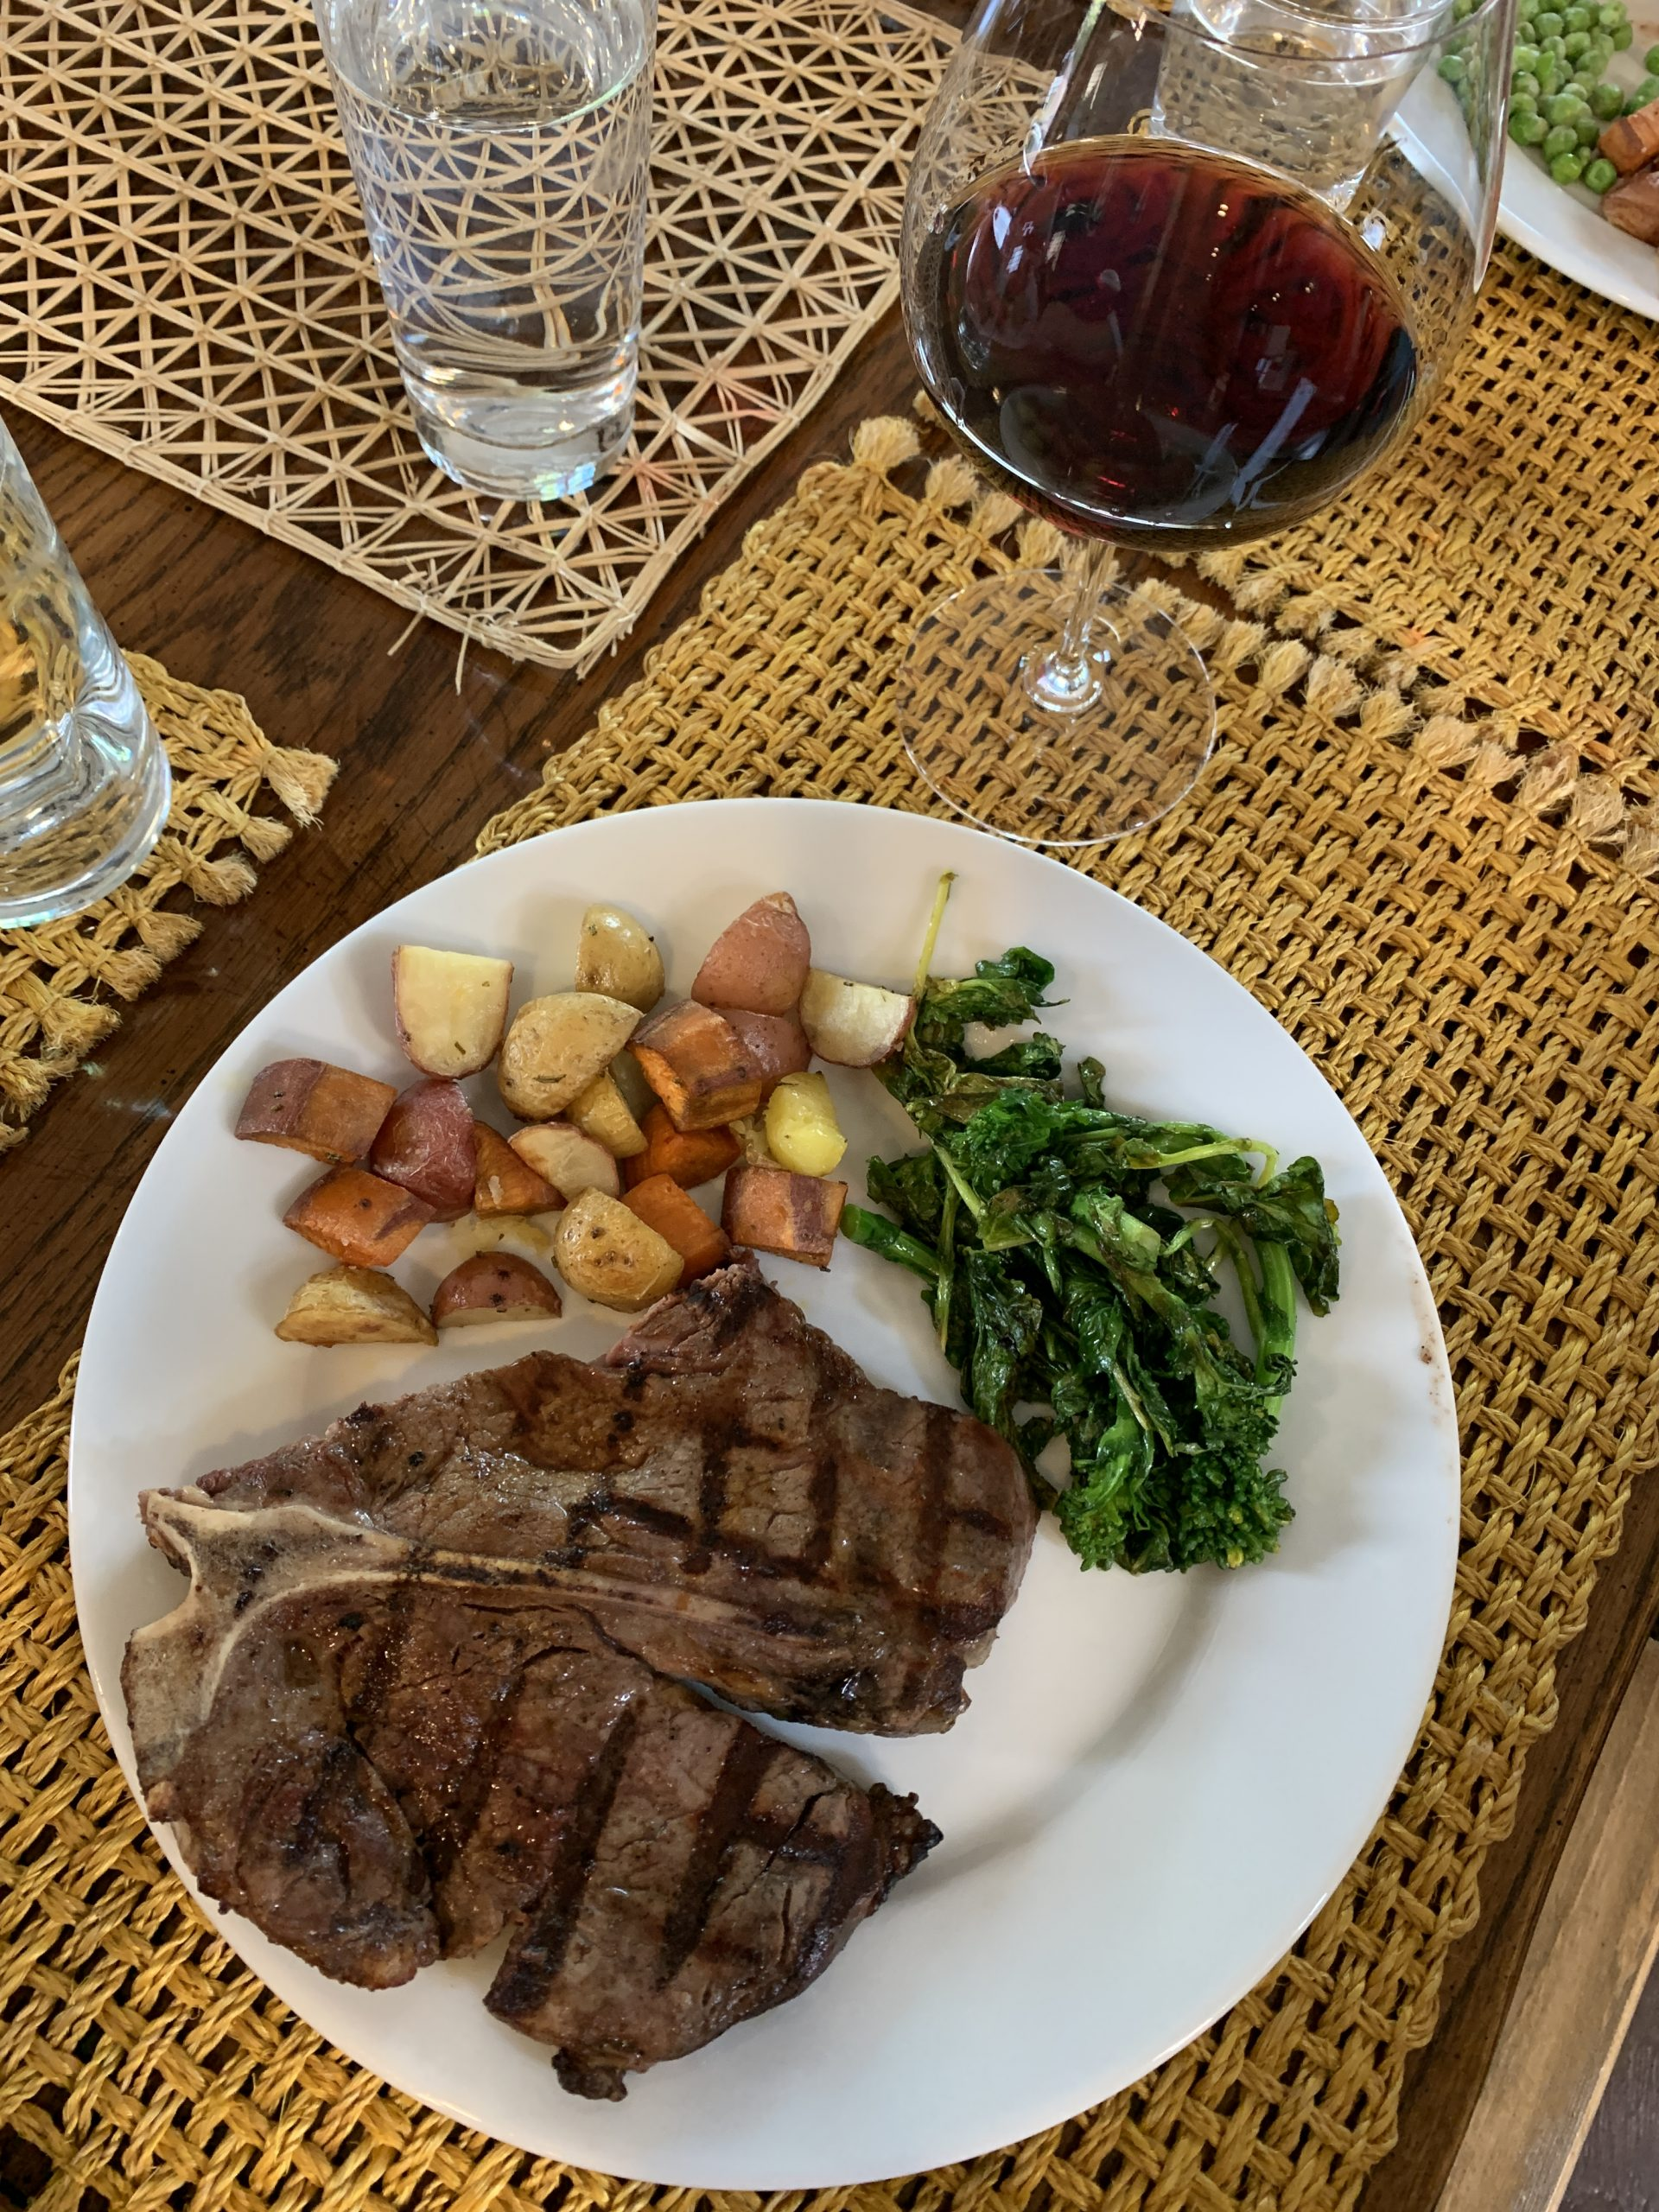 Day 18. Grilled T-Bone Steak with roasted potato medley and broccoli rabe